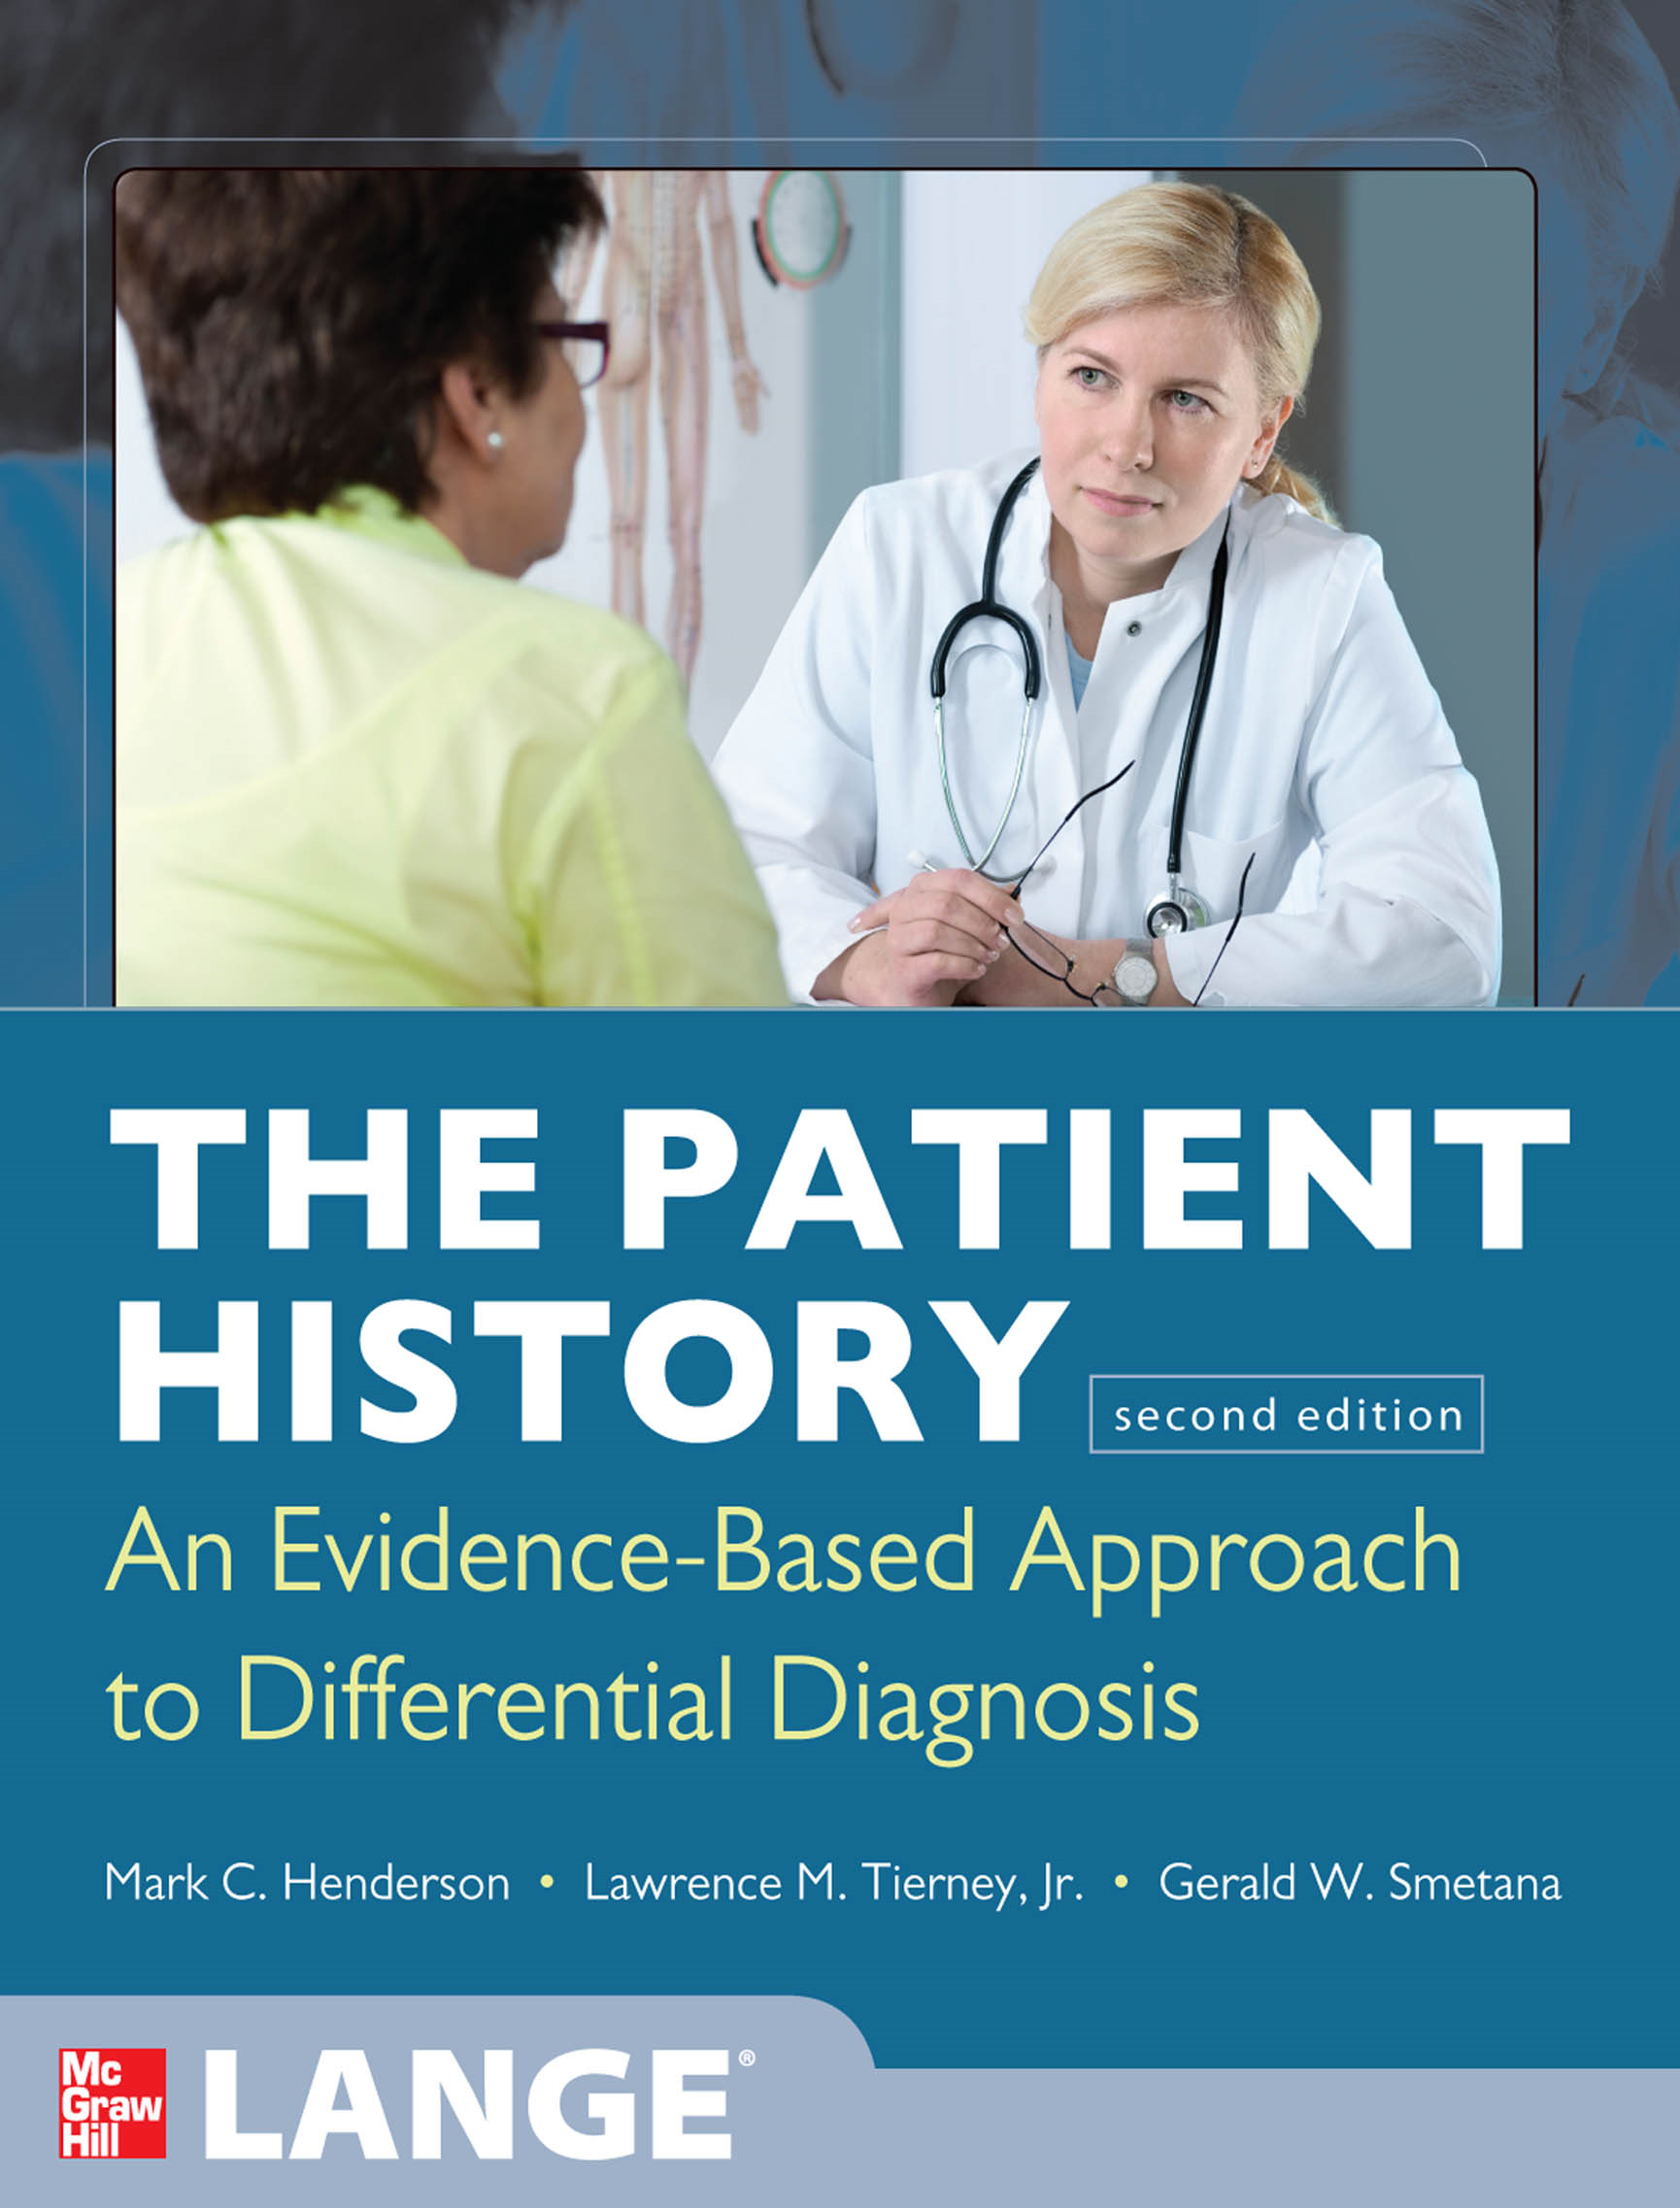 The Patient History: Evidence-Based Approach